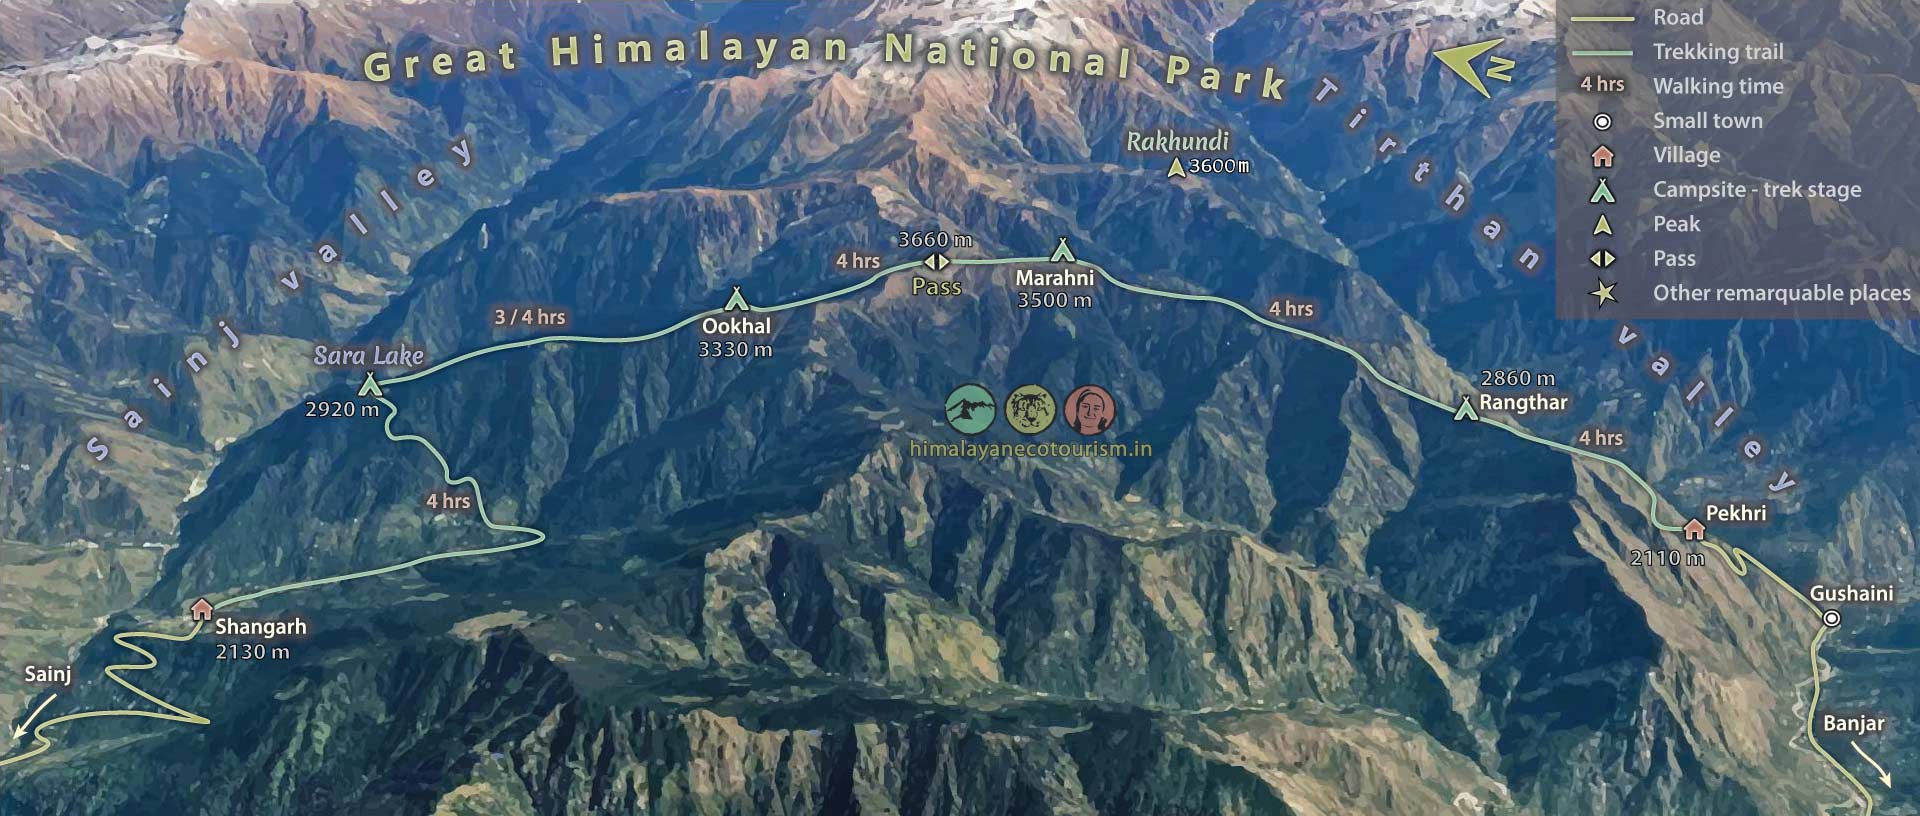 Ookhal trek map in the Great Himalayan National Park GHNP